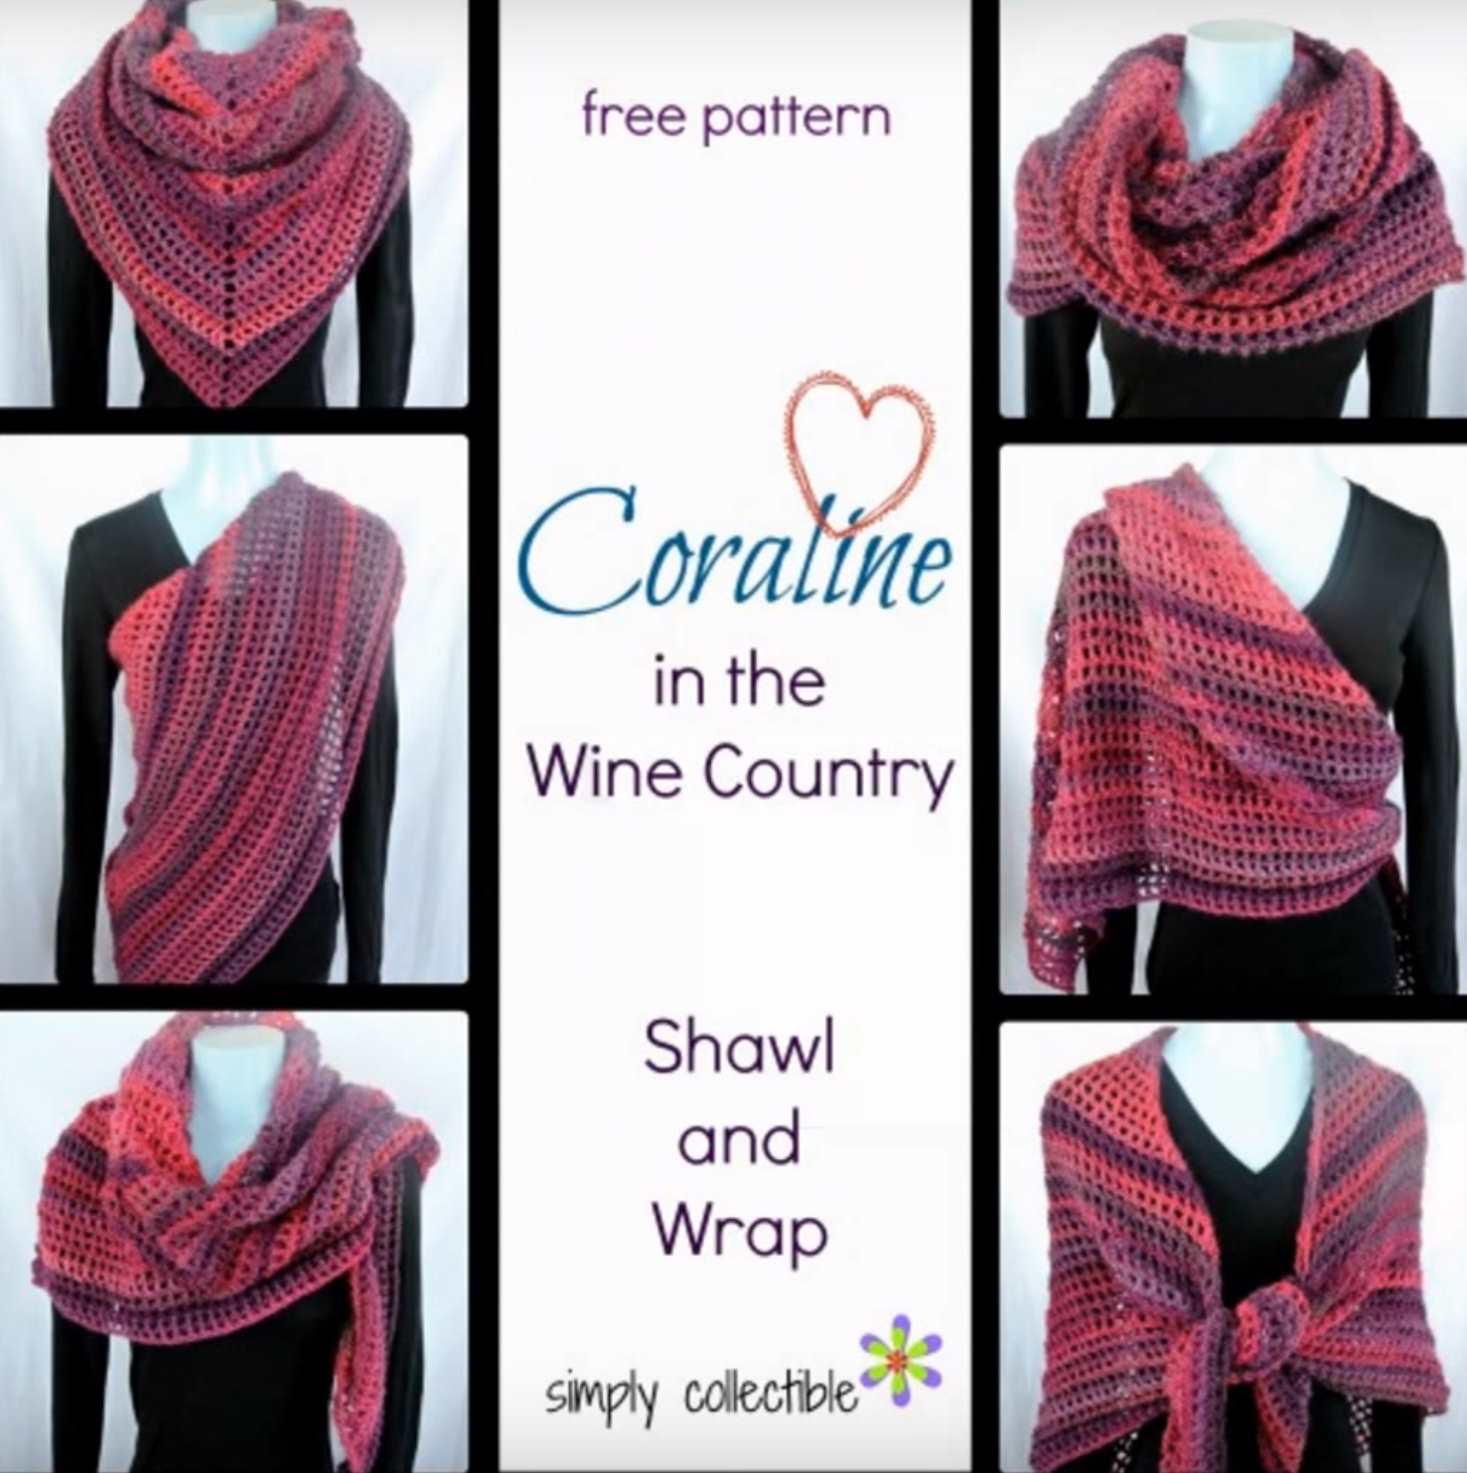 Coraline in the Wine Country Shawl and Wrap Video Tutorial